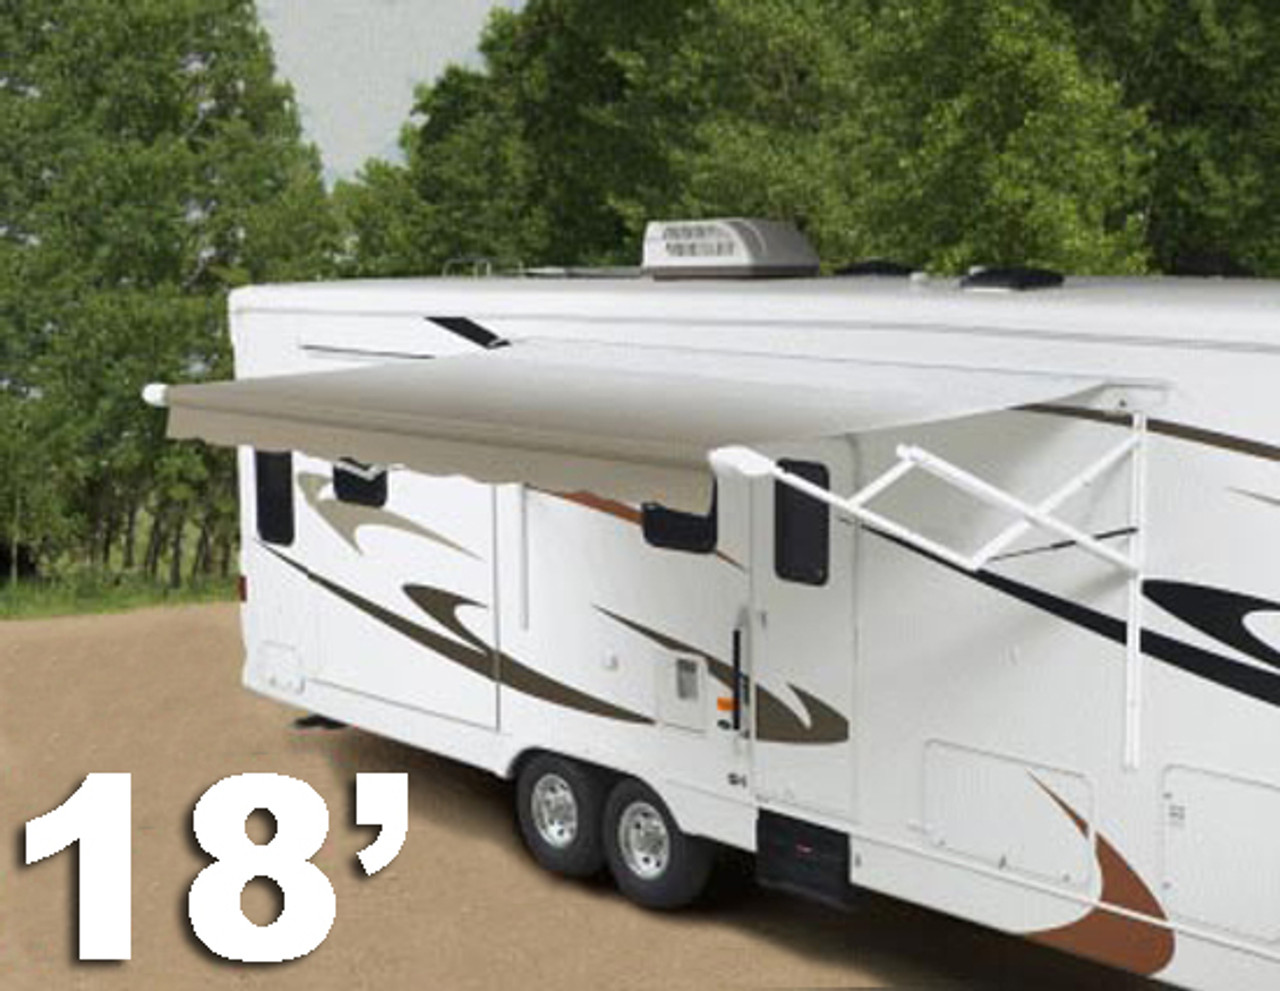 18' 12-volt Travel'r Awning, Complete on mobile home photography, mobile home building, mobile home flooring, mobile home travel, mobile home carports, mobile home patio room, mobile home patio covers, mobile home yard designs, mobile home steps, mobile home decks, mobile home aluminum siding, mobile home doors, mobile home security cameras, mobile home double hung windows, mobile home pools, mobile home window 30x53 taratone, mobile home moving trucks, mobile home mirrors, mobile home front landscape,